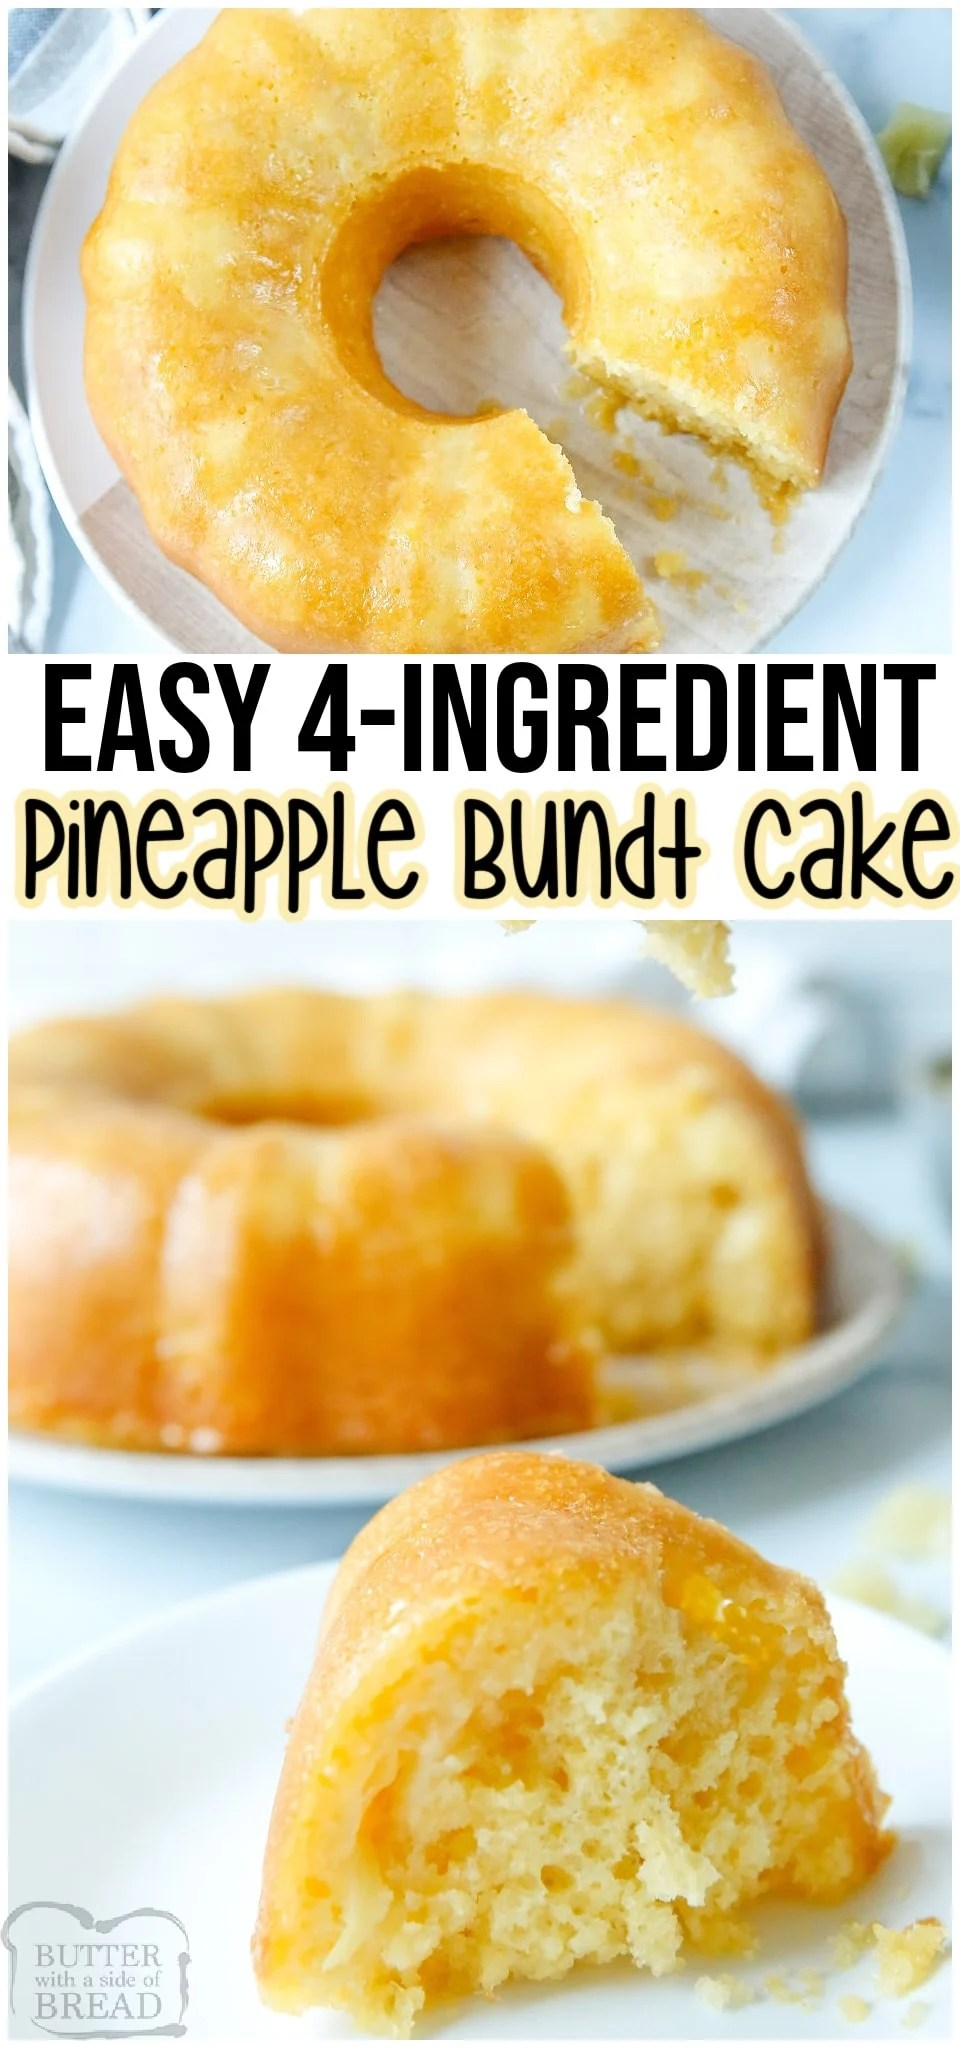 Easy Pineapple Bundt Cake made with just 4 ingredients and SO GOOD! Canned pineapple with the juice, a cake mix & butter combine for this deliciously simple bundt cake recipe!#bundt #pineapple #cake #easycake #cakemix #cakerecipe #dessert #baking #easyrecipe from BUTTER WITH A SIDE OF BREAD